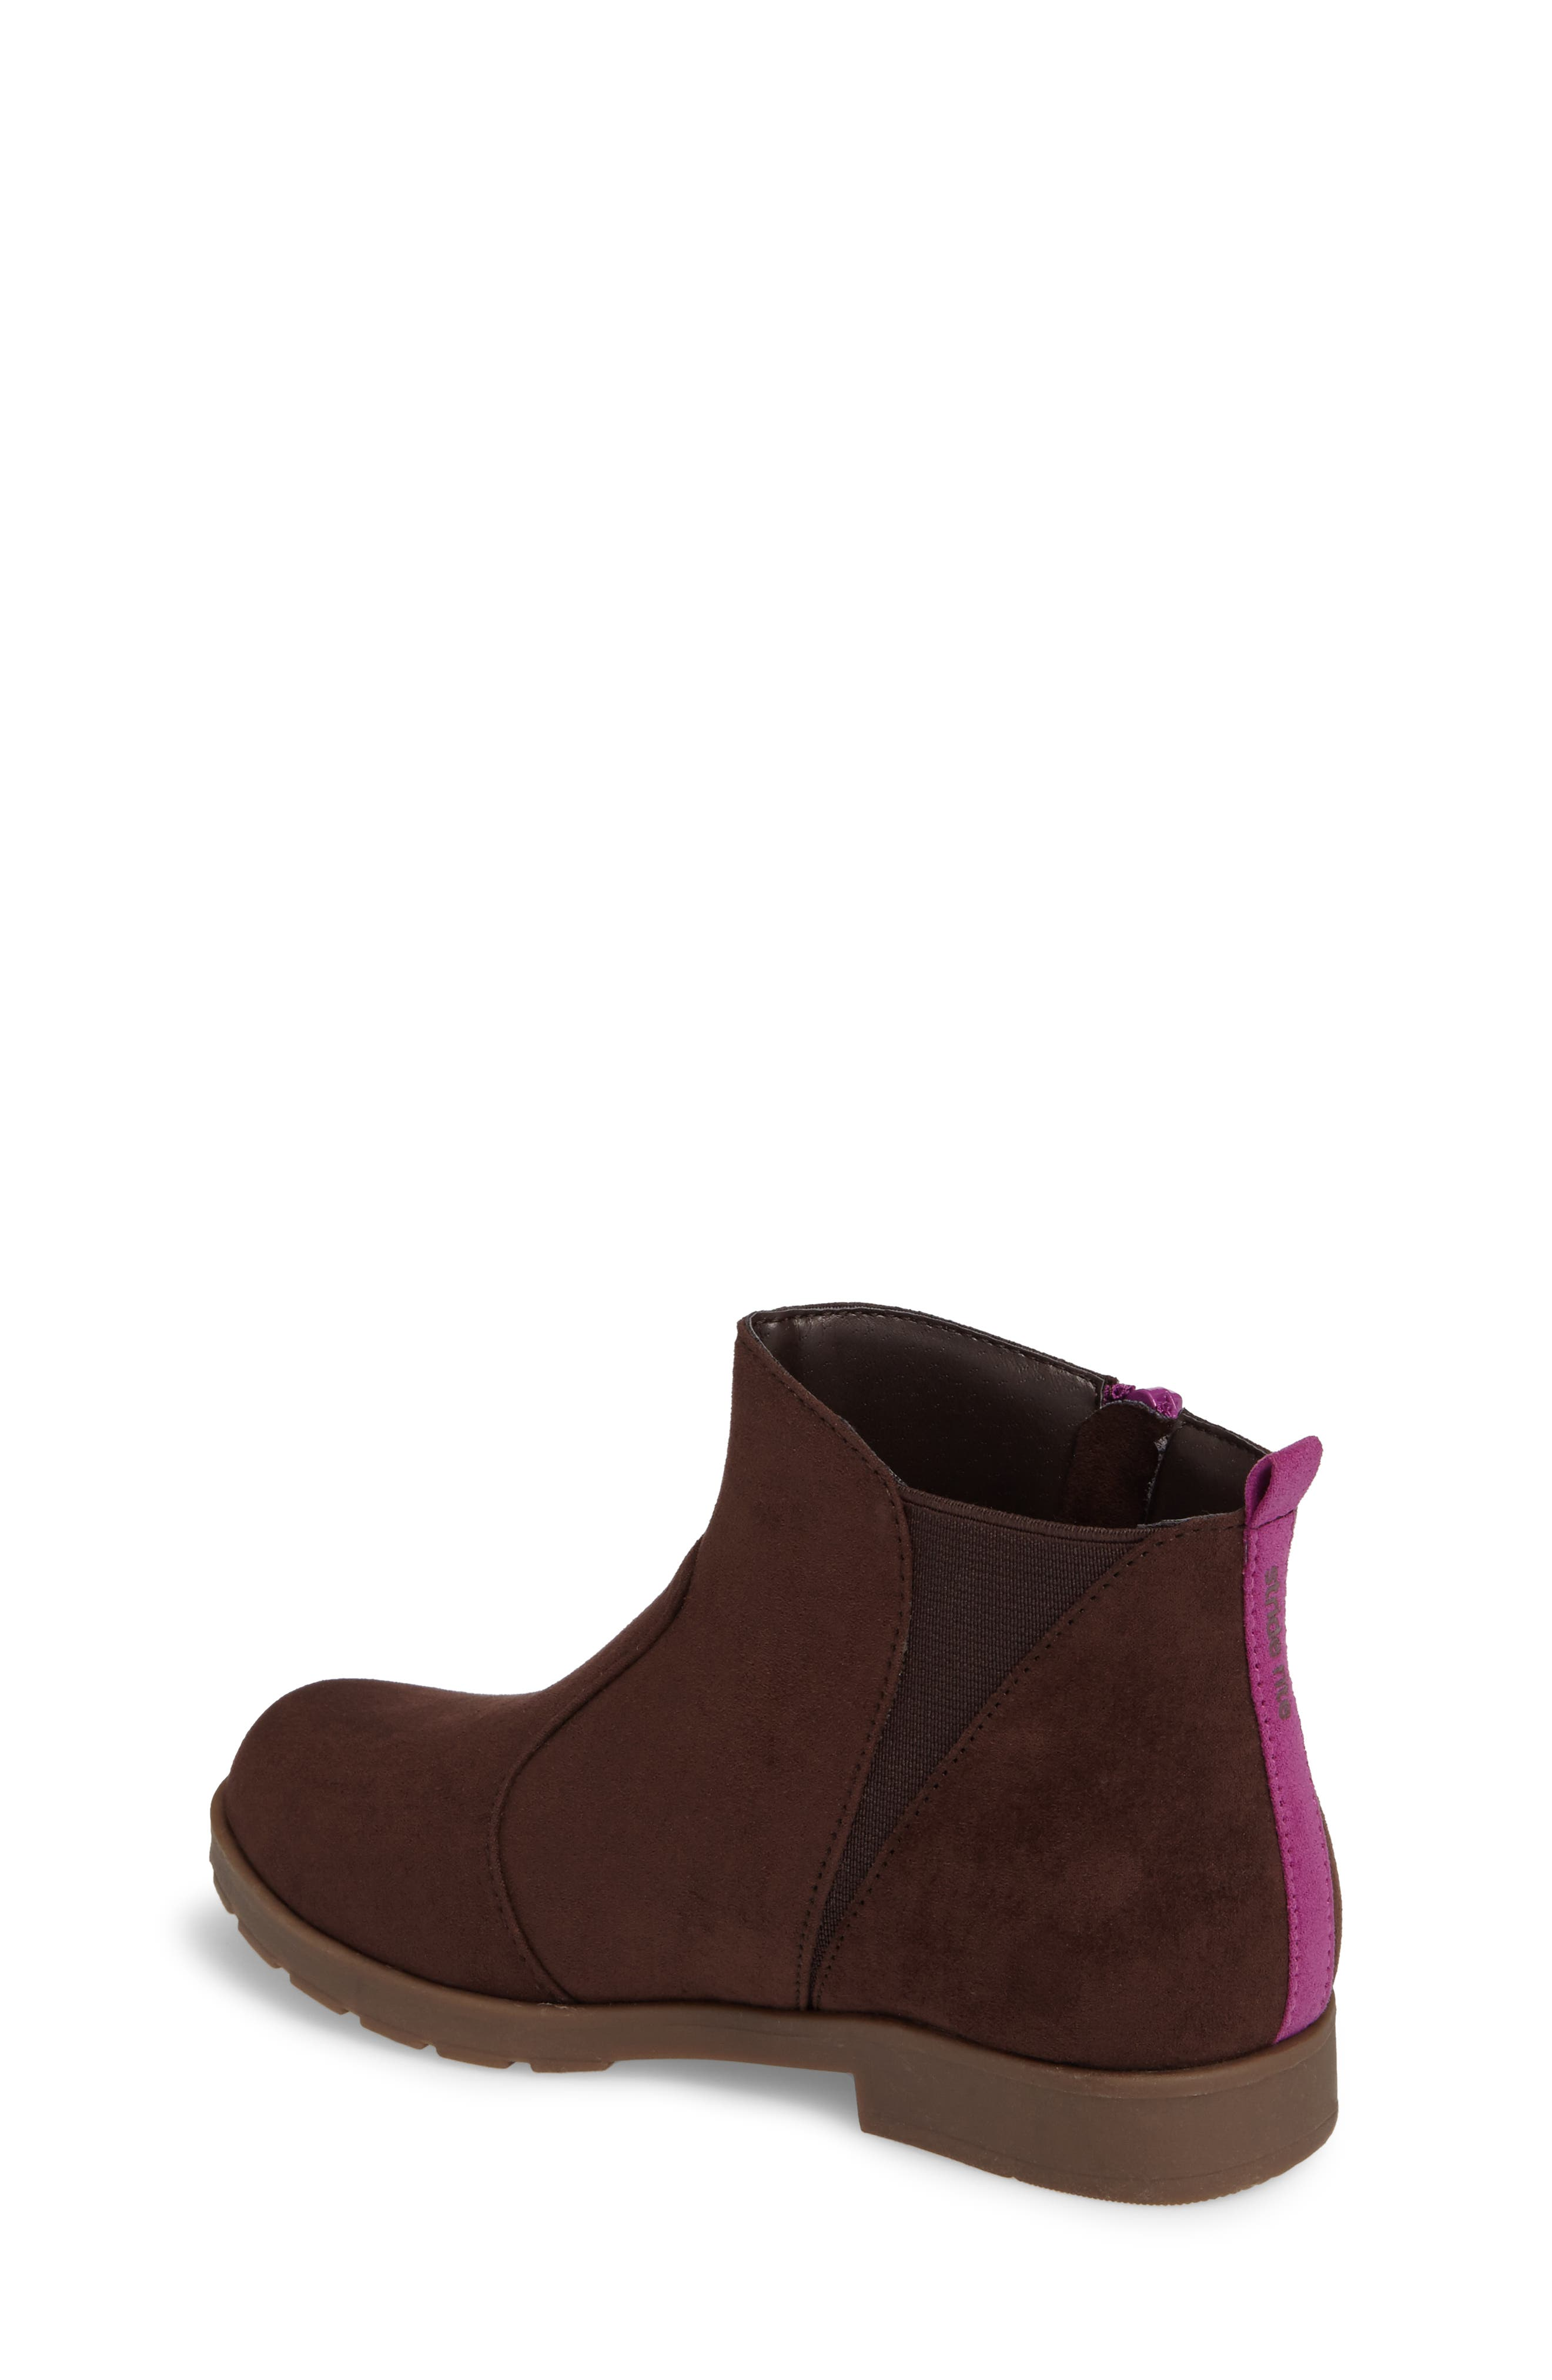 Lucy Zip Bootie,                             Alternate thumbnail 2, color,                             Chocolate